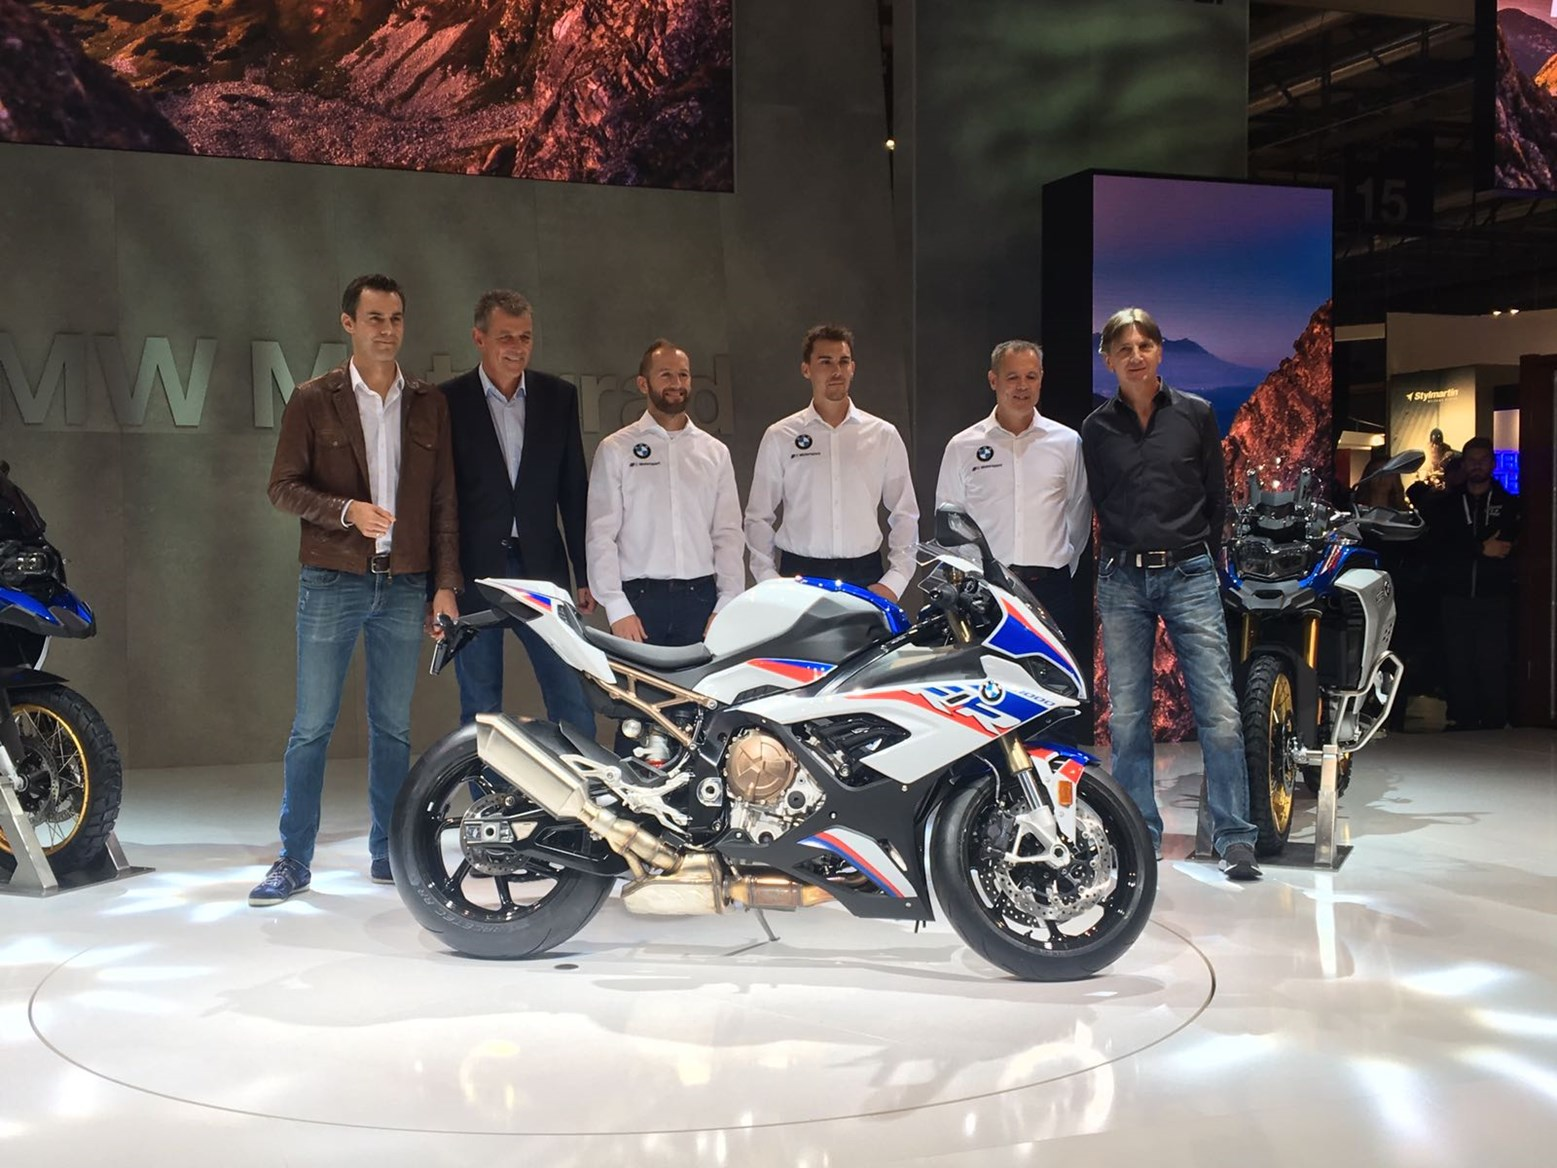 SBK – Honda and BMW Motorrad return to action with factory teams